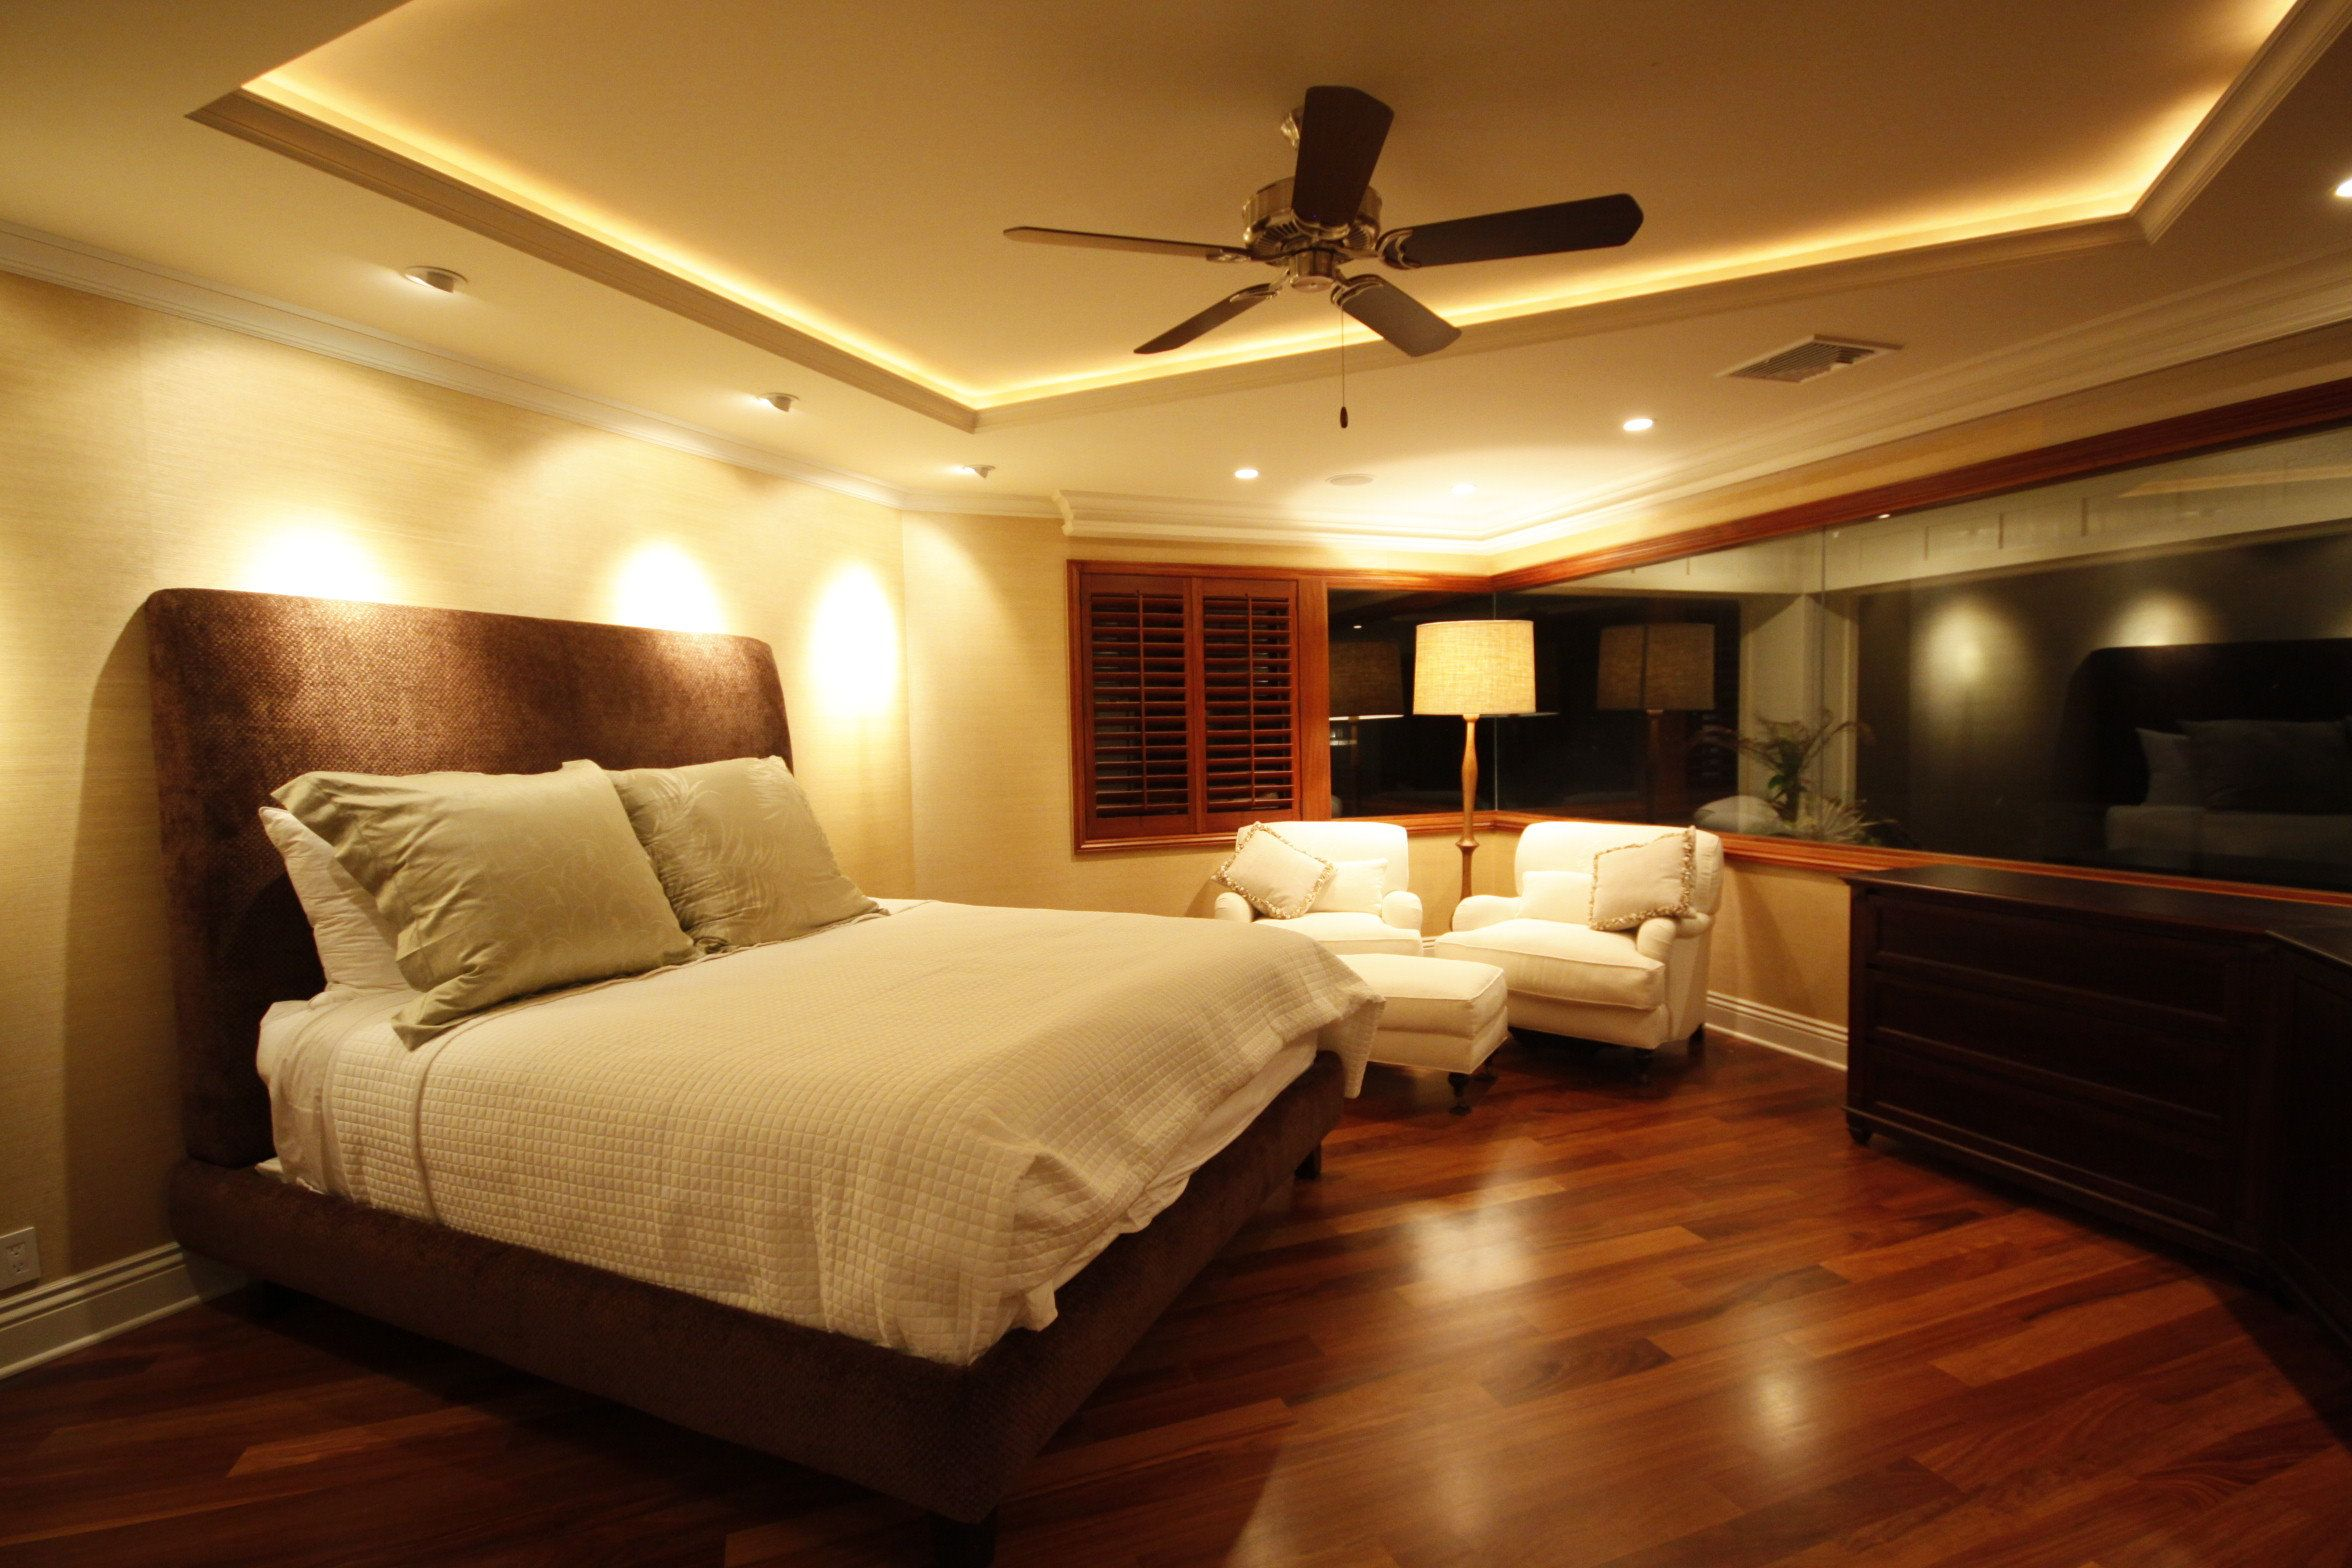 Appealing master bedroom modern decor with wooden floors for Master bedroom designs images